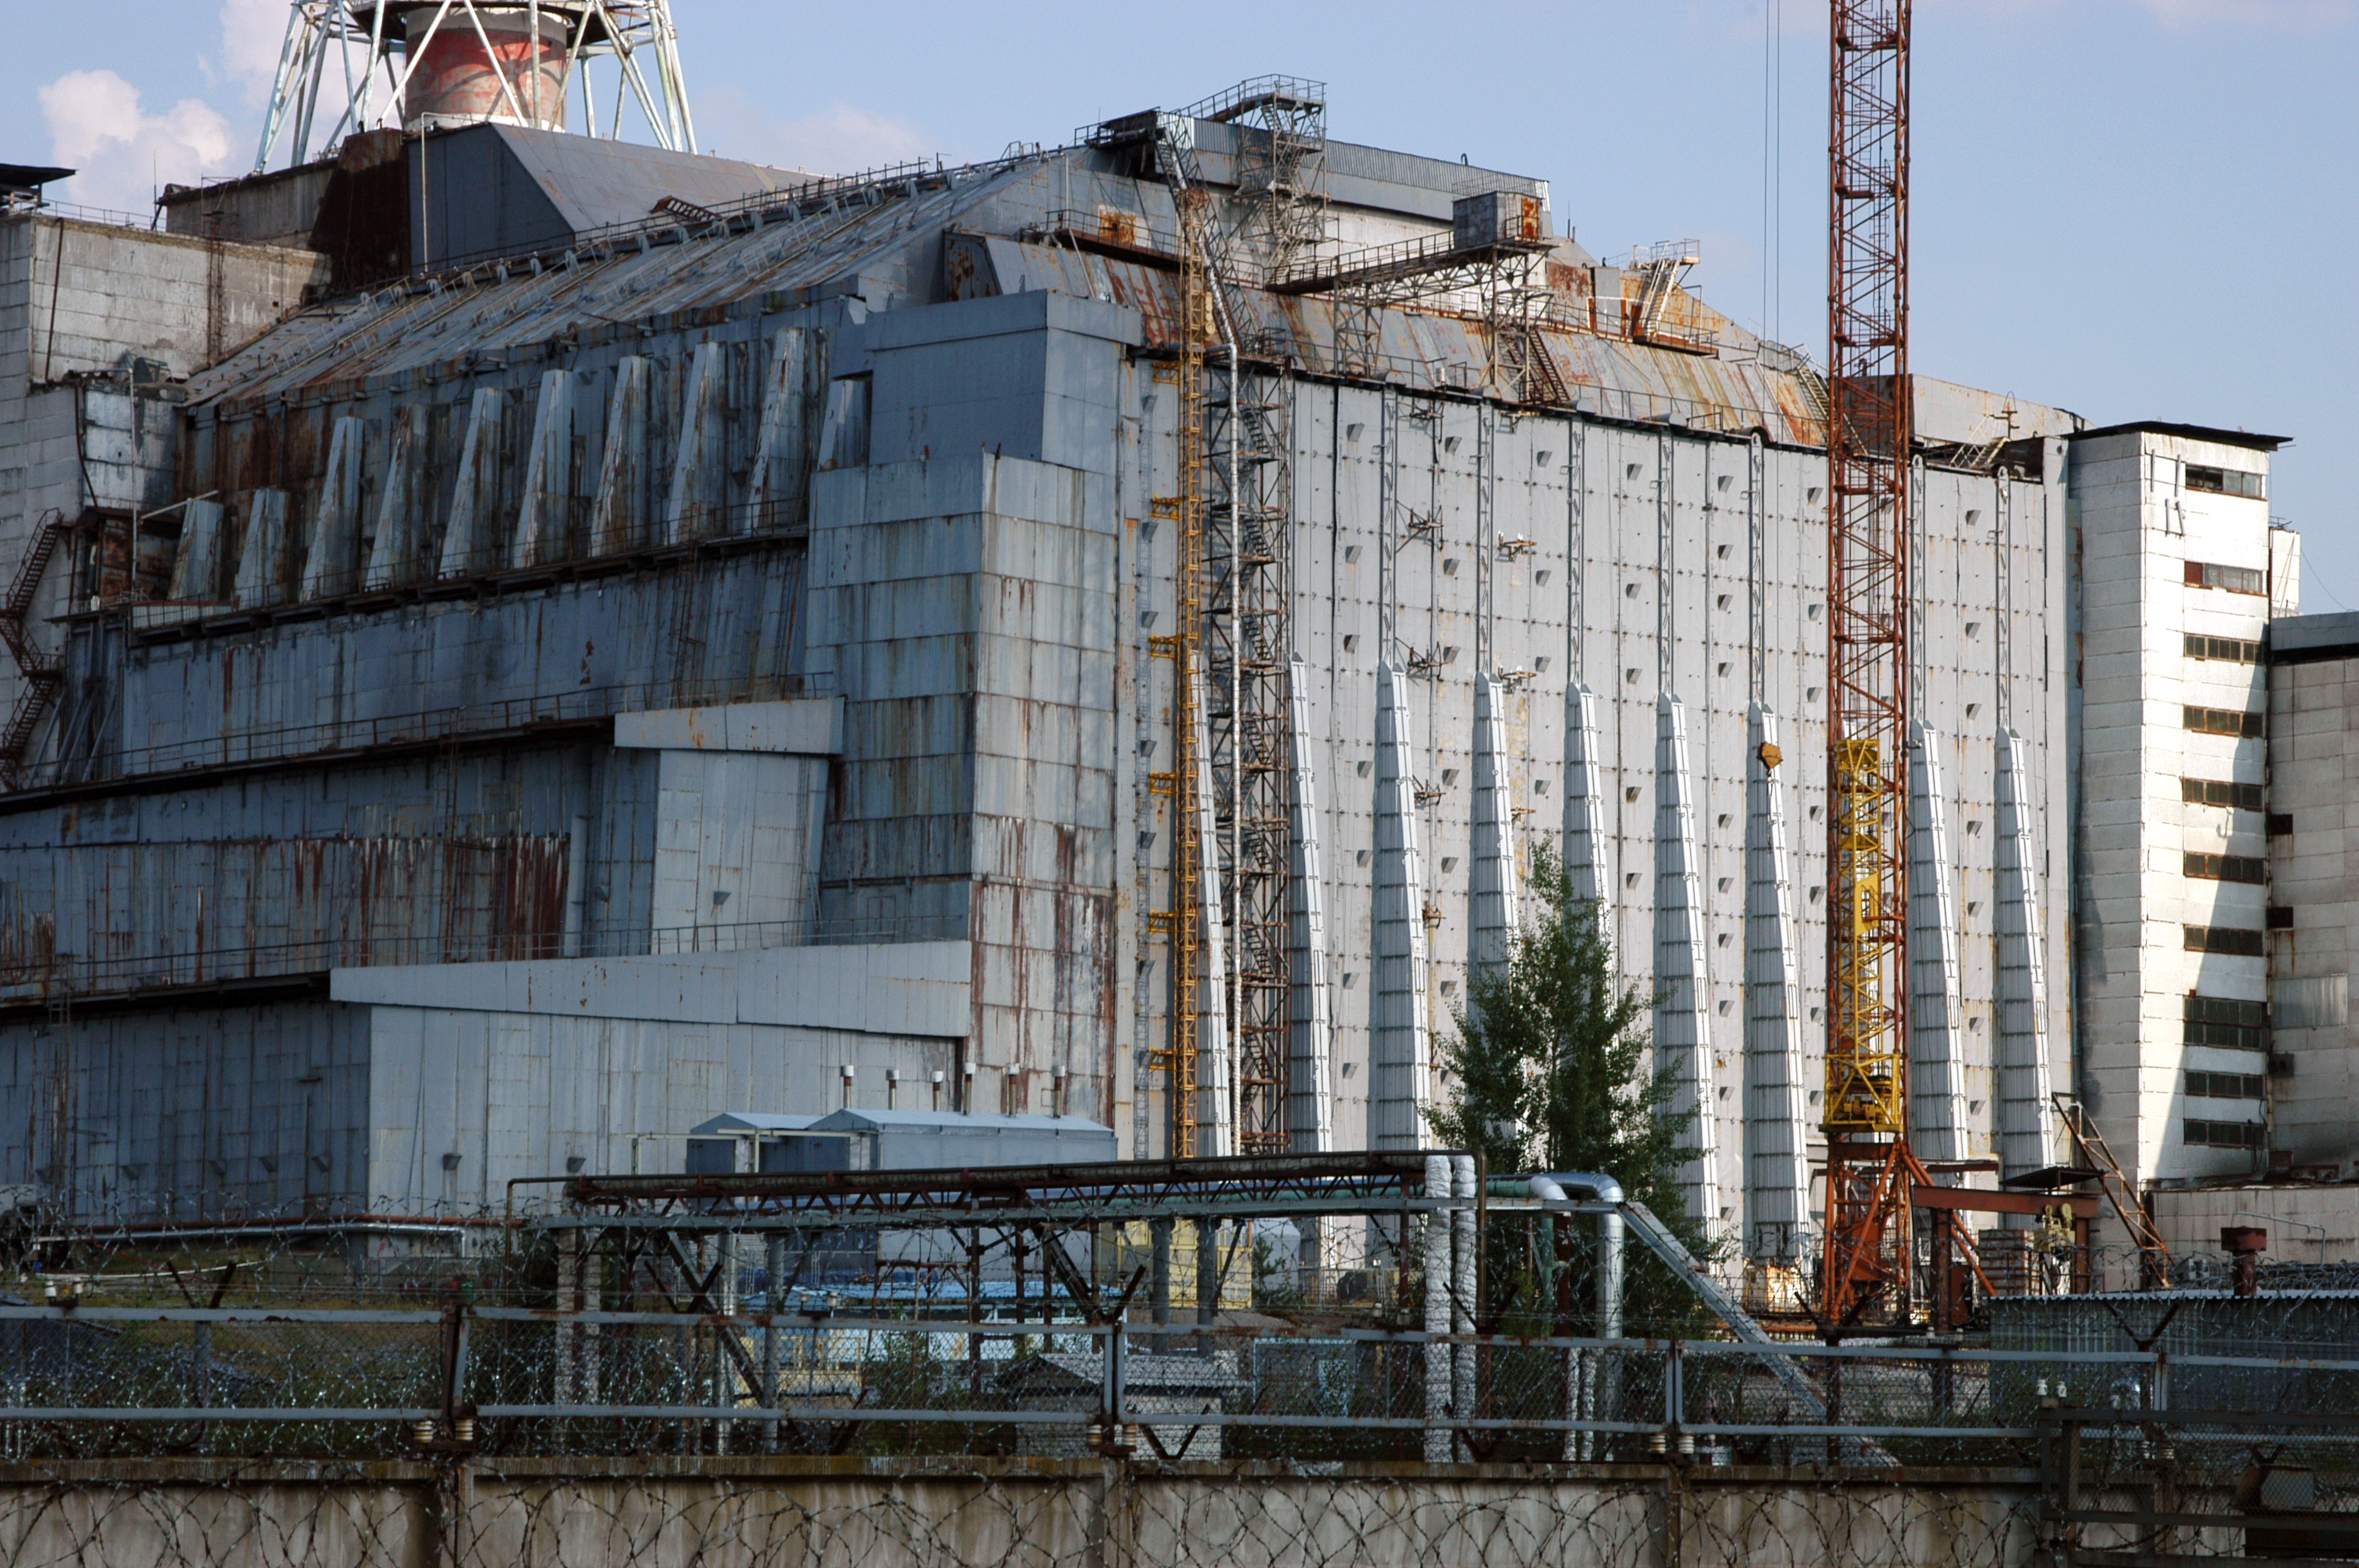 Chernobyl Nuclear Power Plant sarcophagus - Wikipedia